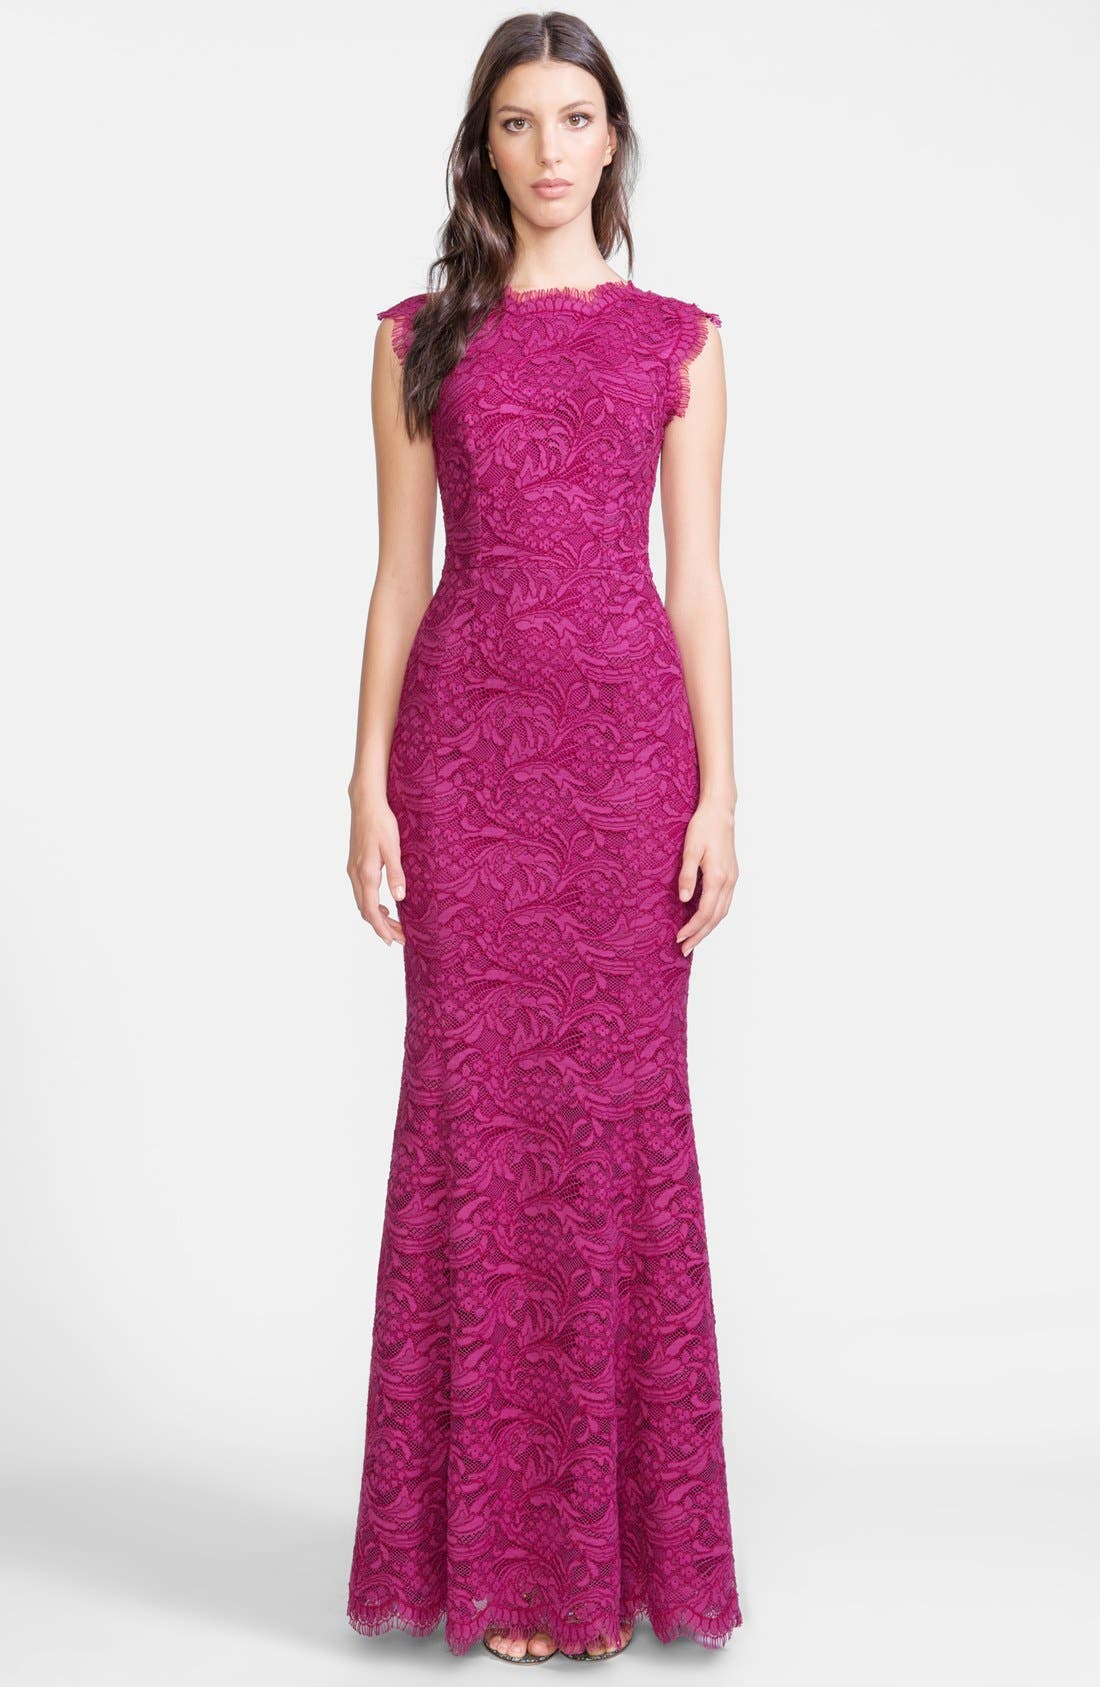 Main Image - Dolce&Gabbana Lace Trumpet Gown